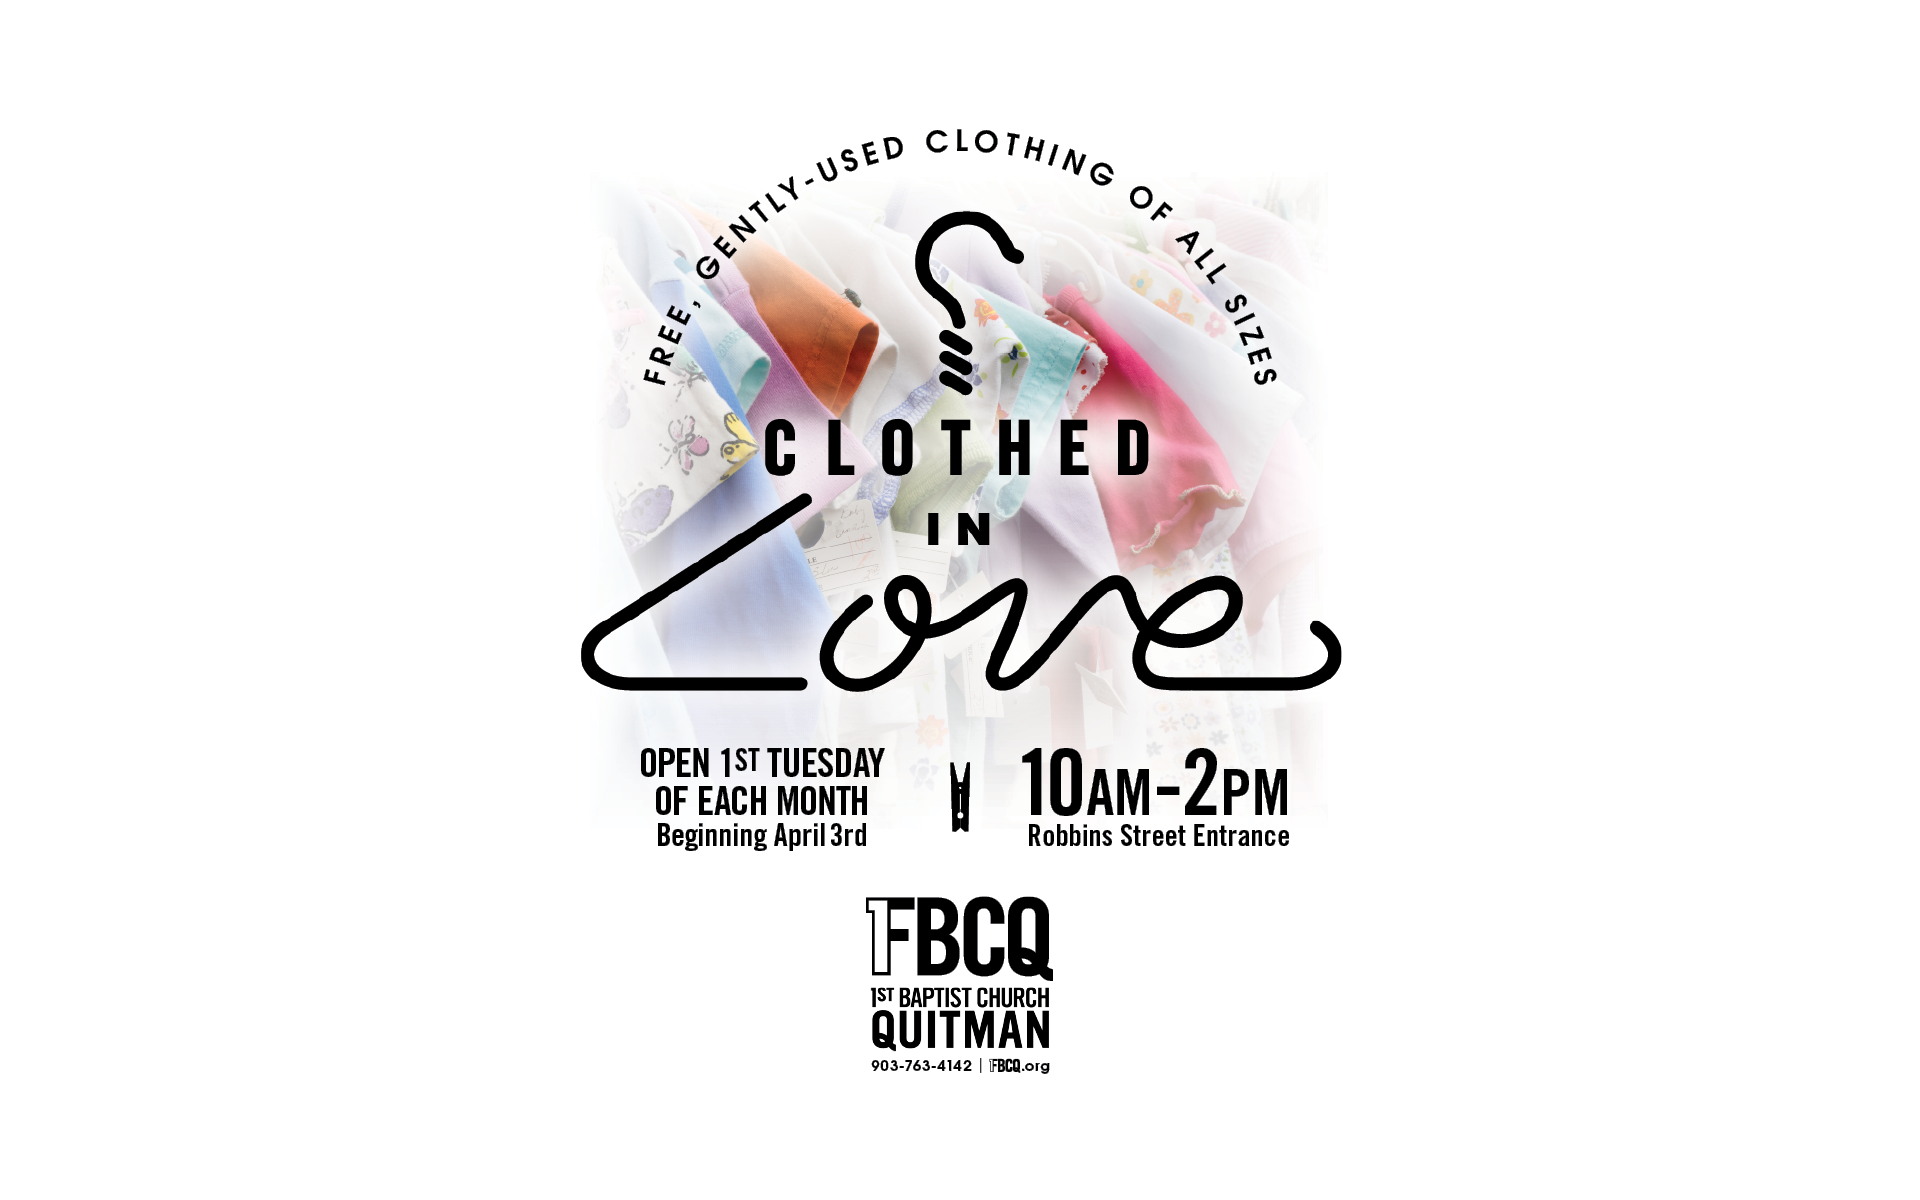 CLOTHED IN LOVE FLIER fbcq.org